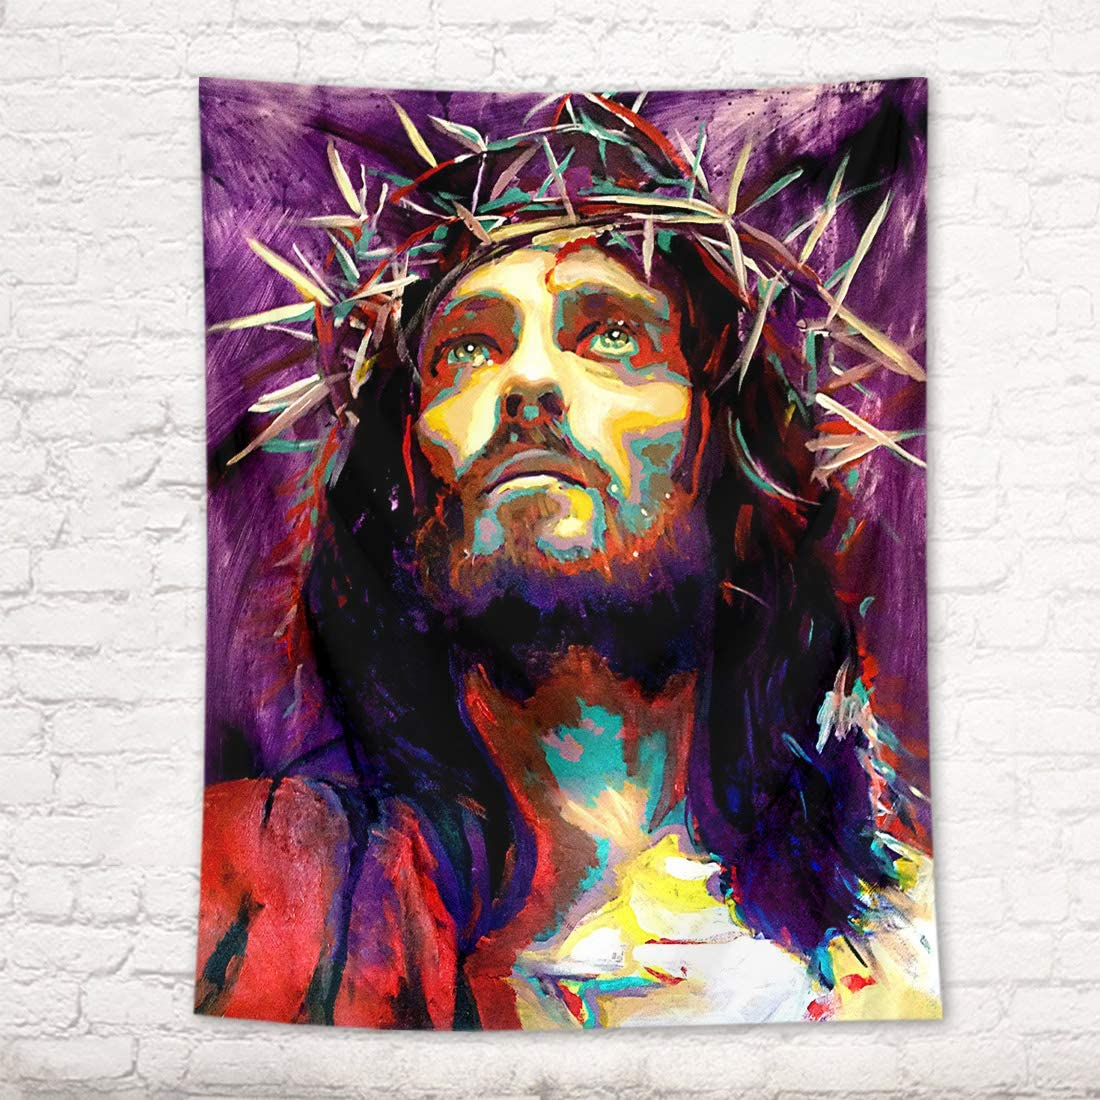 HVEST Jesus Tapestry Christian Faith Christmas Tapestries Portrait Watercolor Church Tapestry Wall Art Decor Hanging Blanket for Living Room Bedroom Dorm Home Decoration 71X92.5 Inches 180X235CM